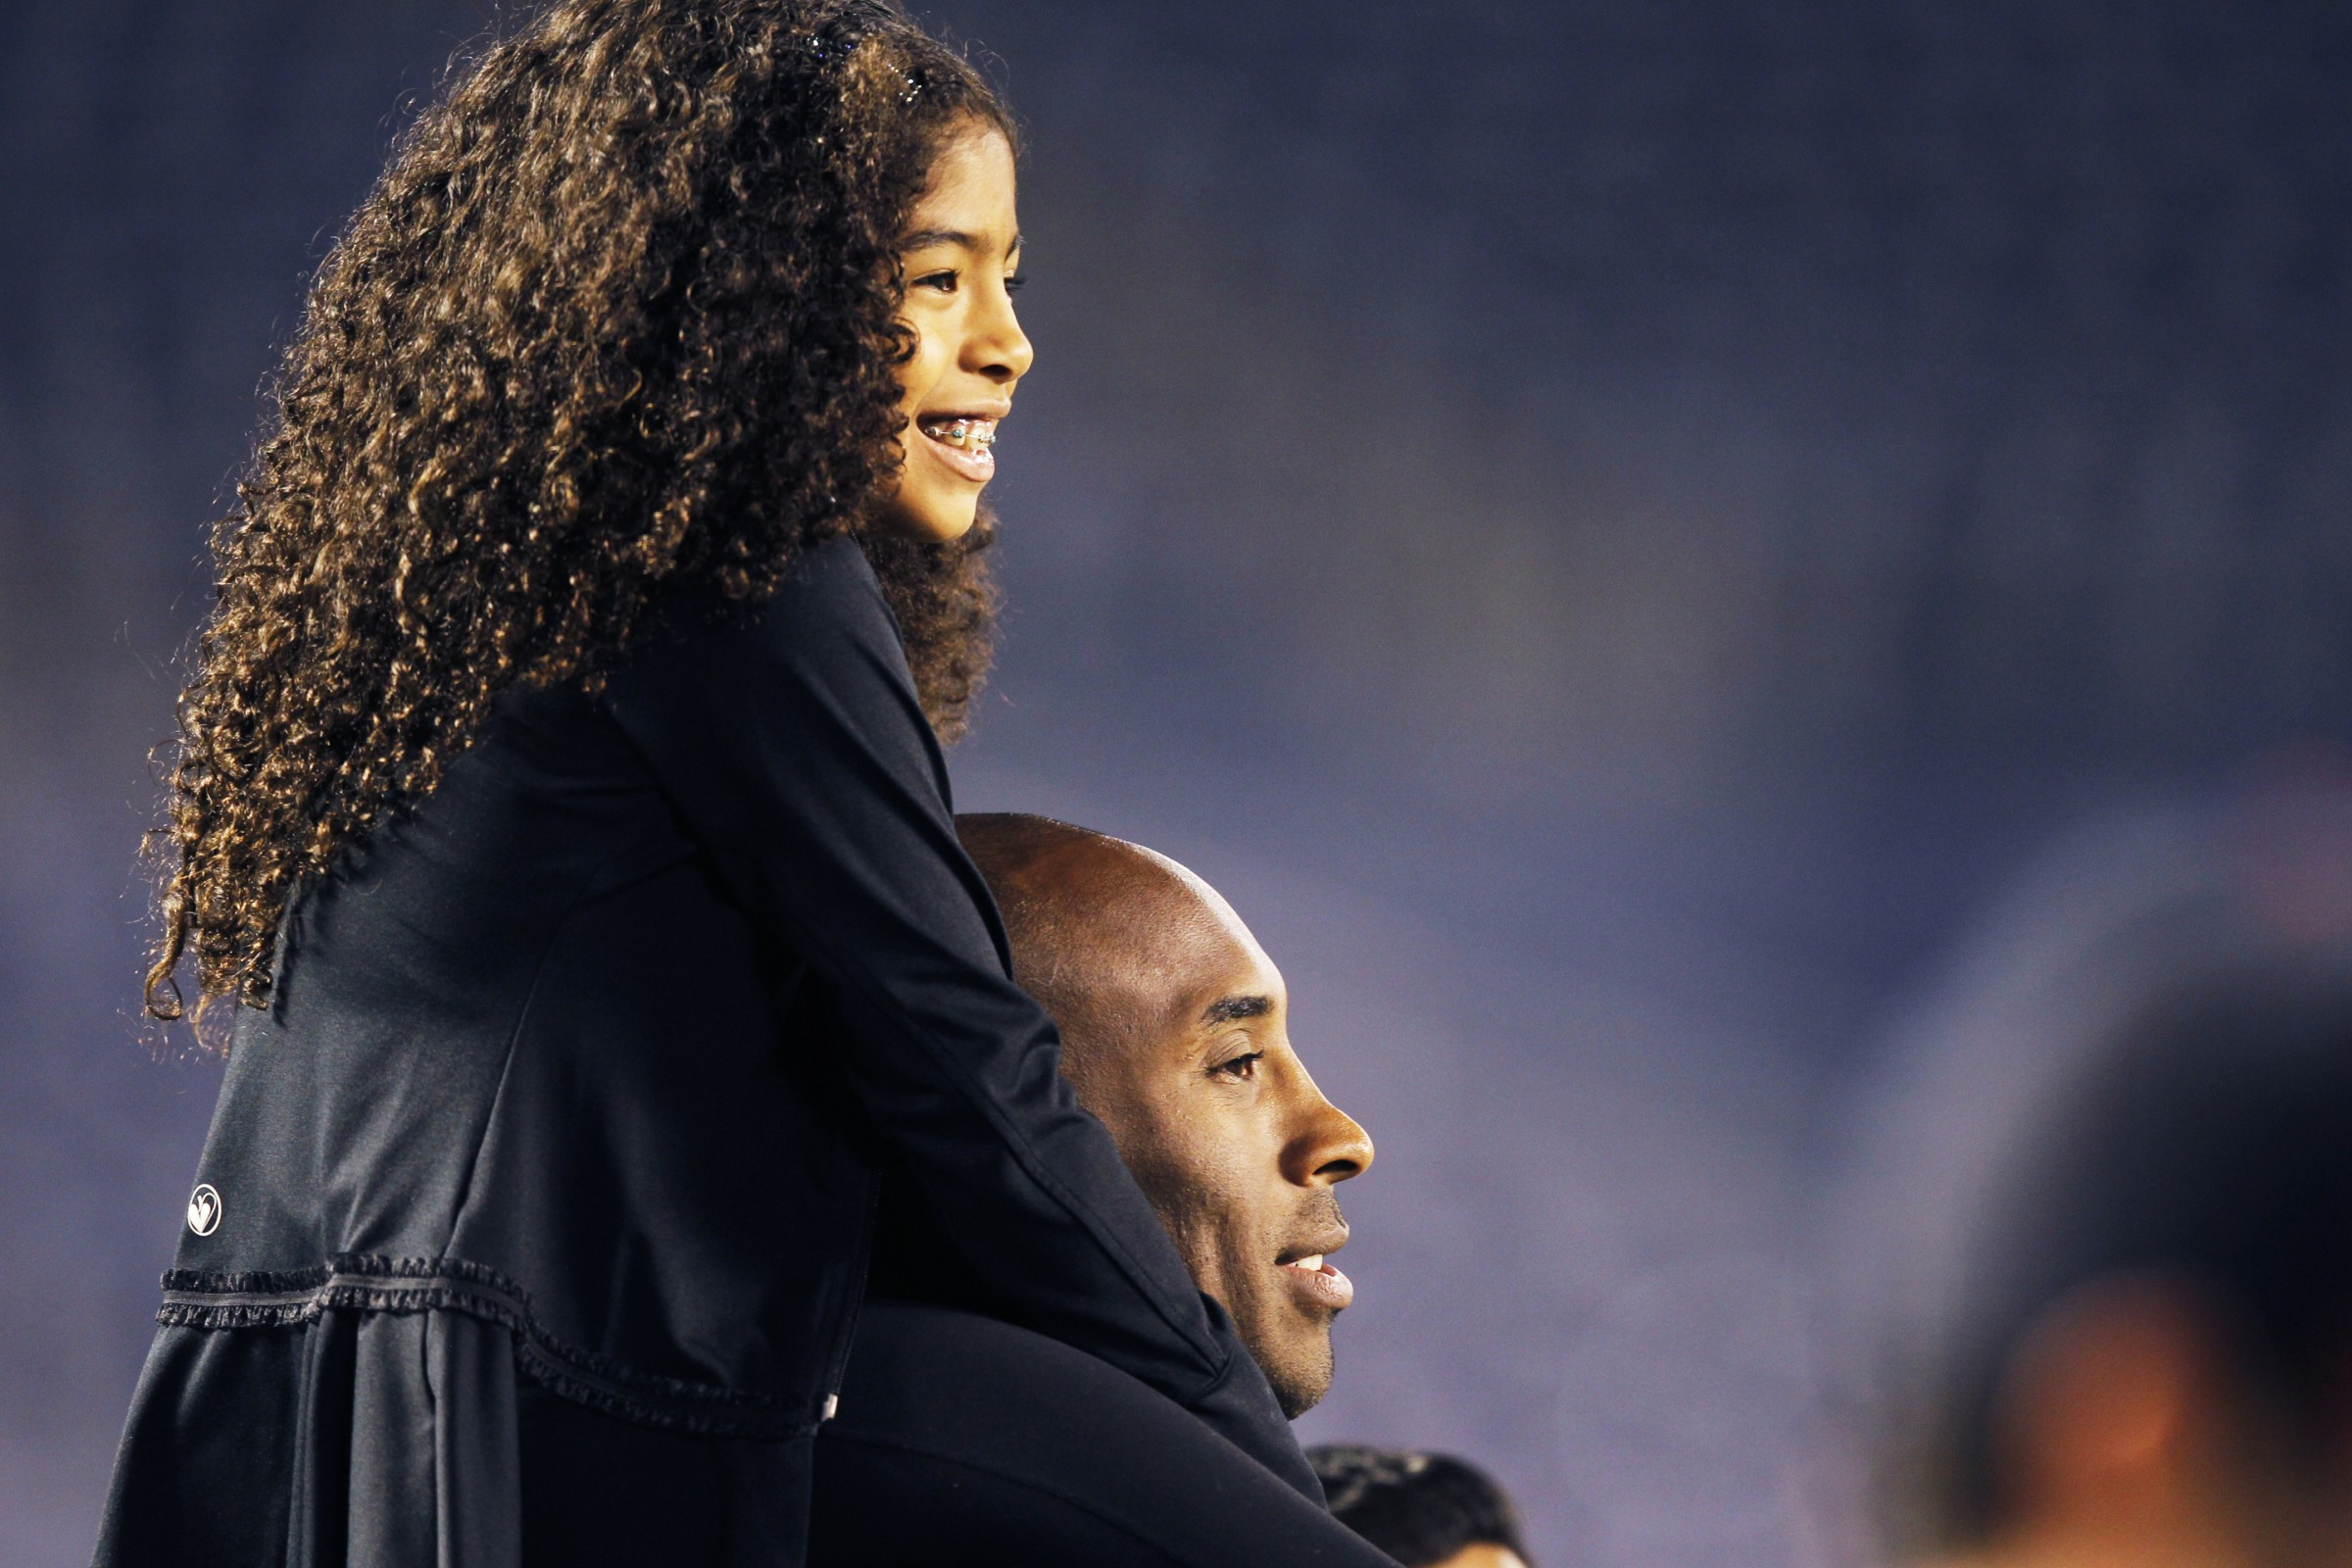 Professional NBA Player, Kobe Bryant and Gianna Maria Onore Bryant his daughther Killed in Helicopter Crash